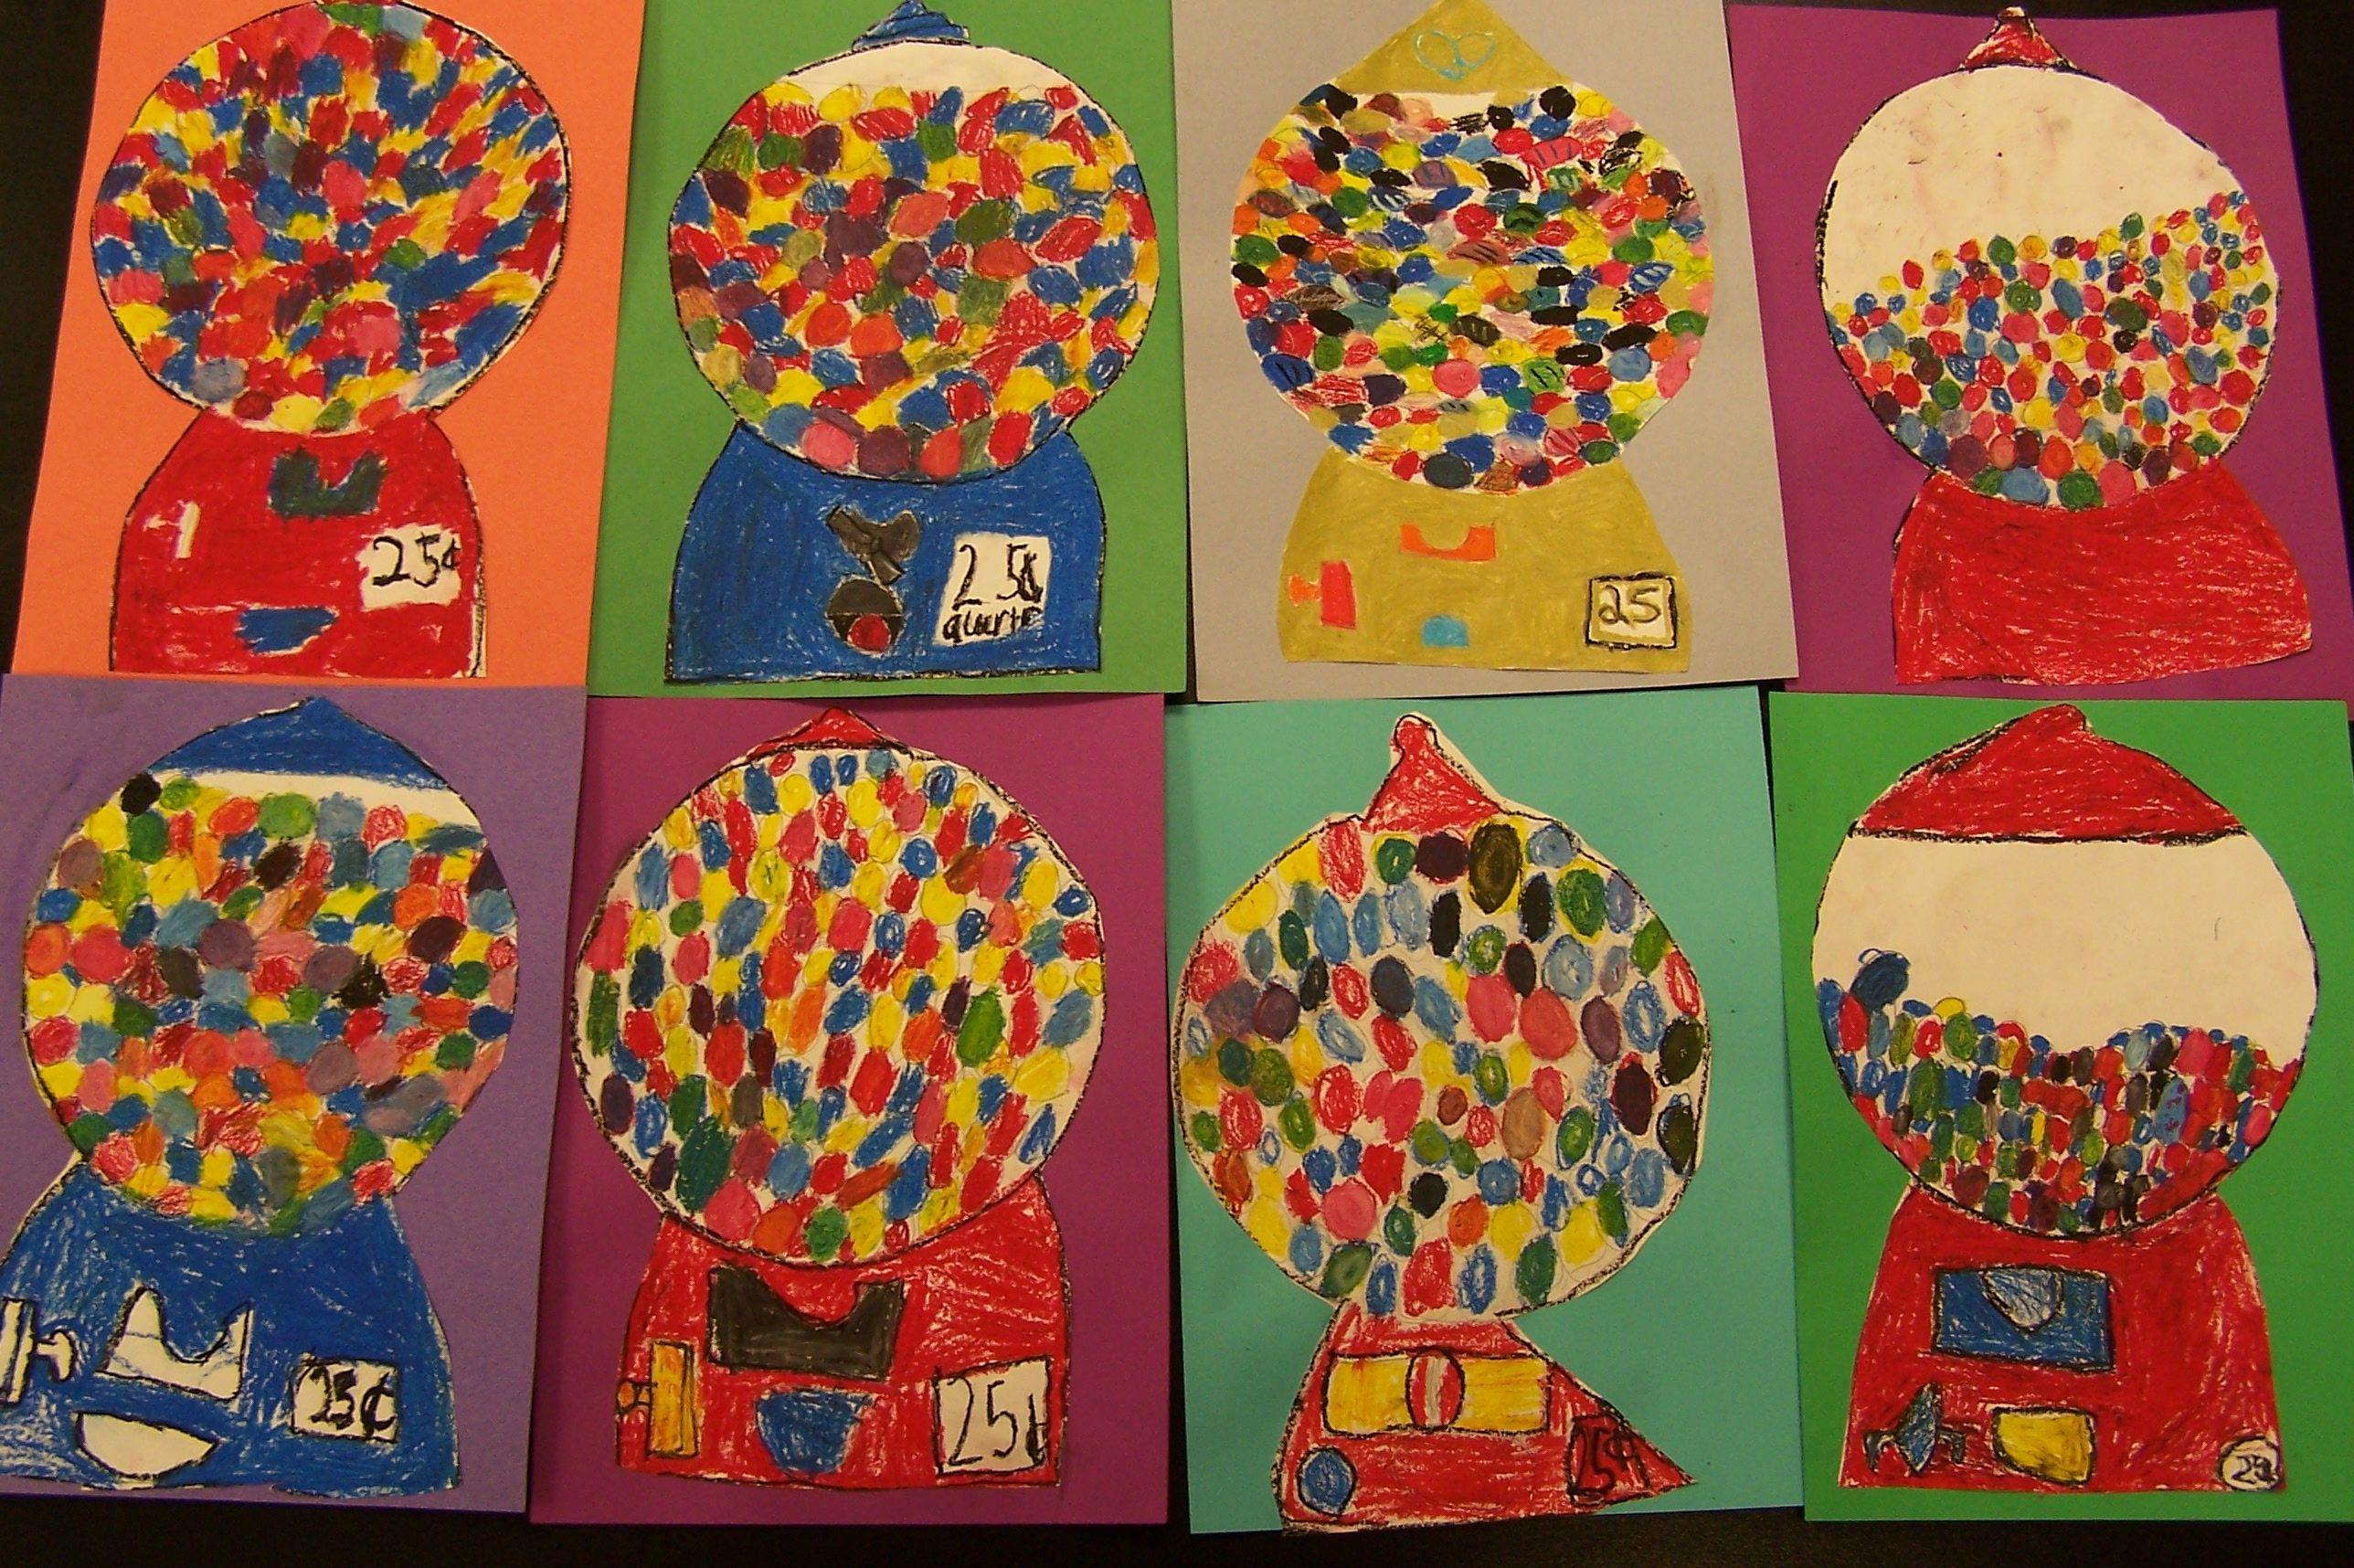 Color wheel art lesson for second grade - Art Lessons The 2nd Grade Students Reviewed Color Mixing Ideas And Used Their Skills To Make An